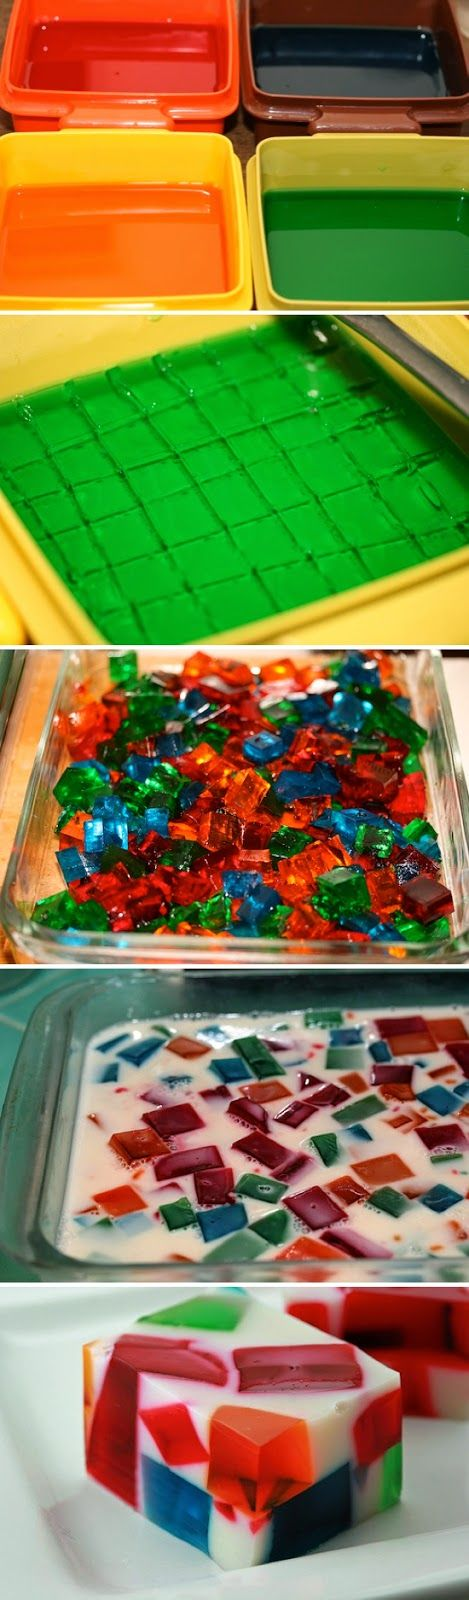 How To Make Broken Glass Jello, would be great with added liquor at a party